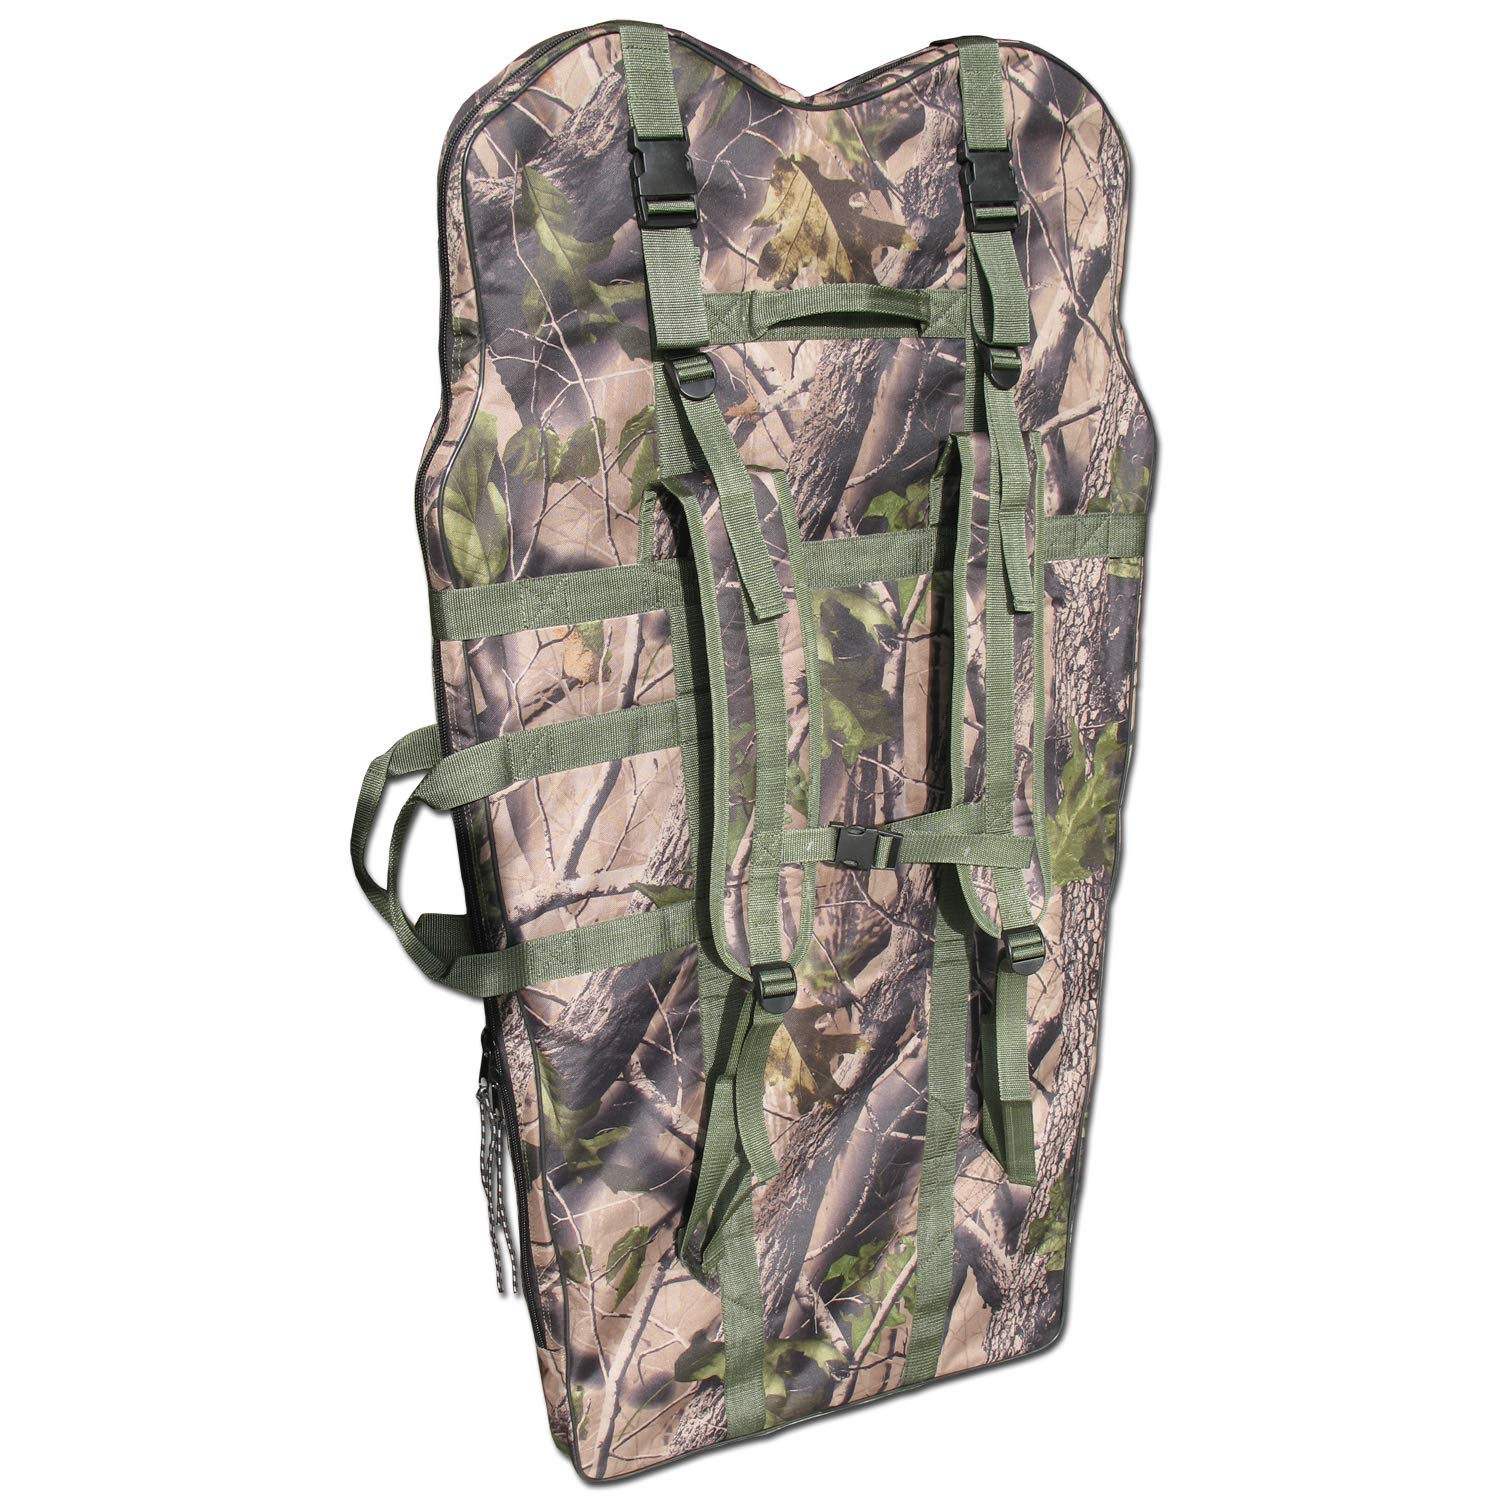 Ghostblind Deluxe Carry Bag (Fits Predator Blind Only)